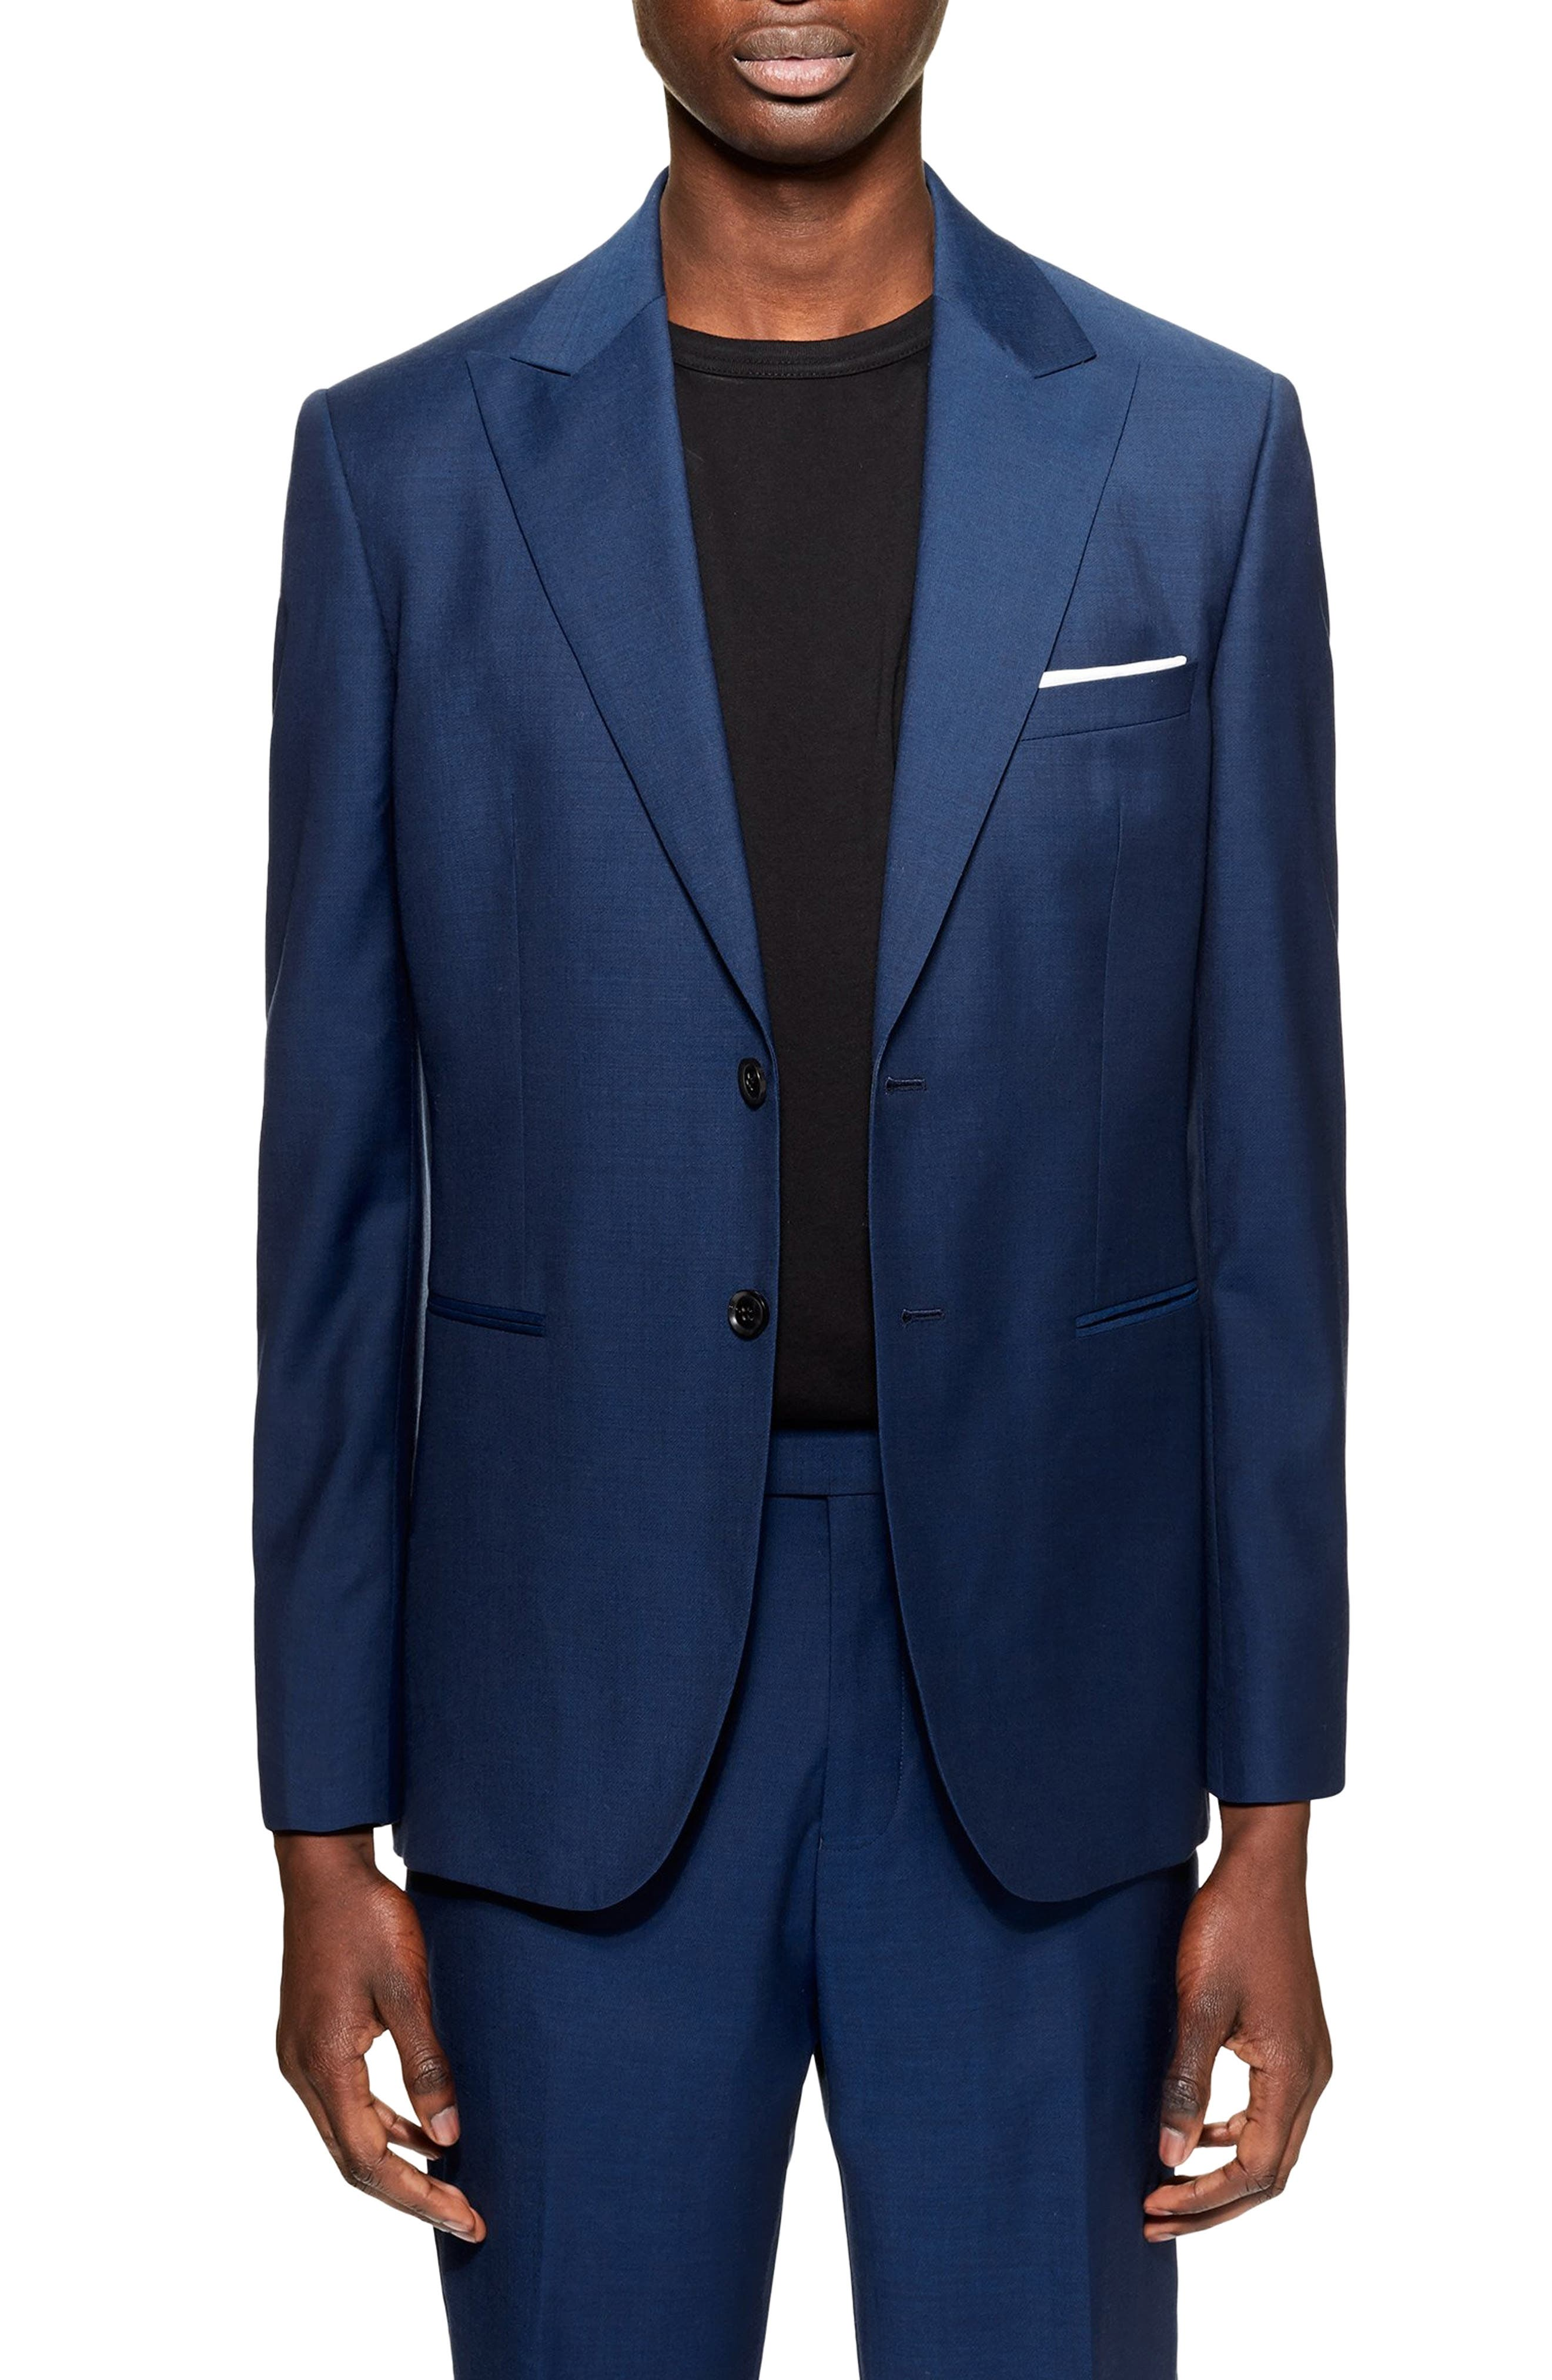 Casely Hayford Skinny Fit Suit Jacket,                             Main thumbnail 1, color,                             NAVY BLUE